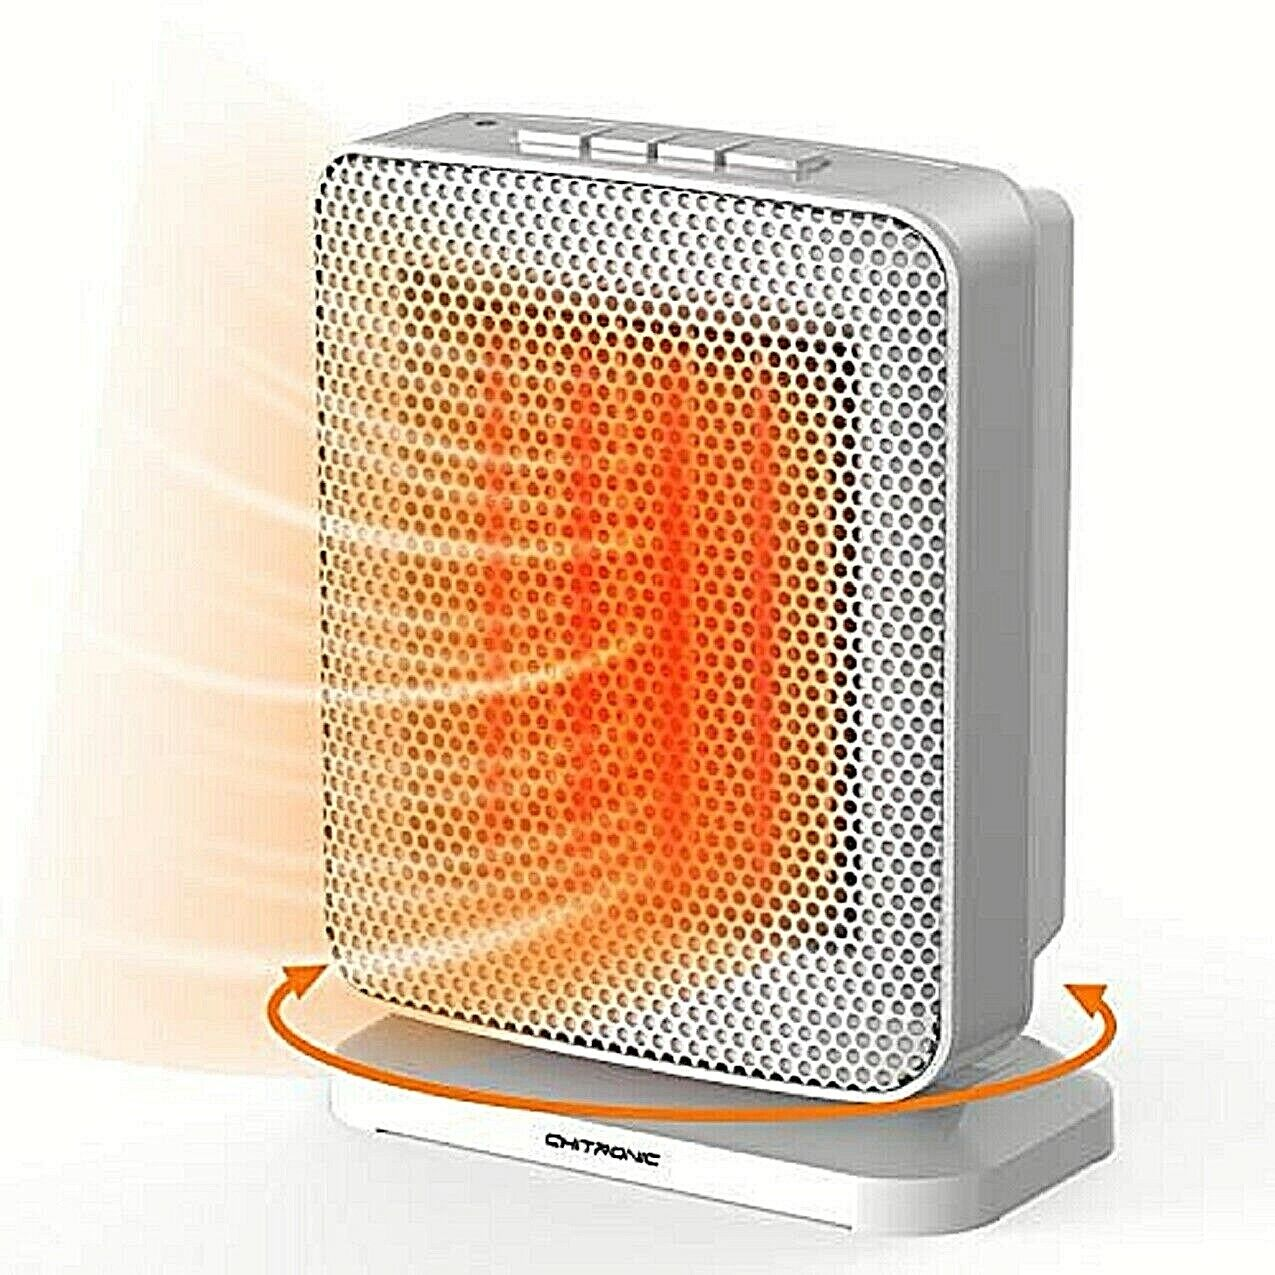 Portable Ceramic Space Heater with Efficient 1500 Watt, ETL Listed Heating & Cooling Appliances